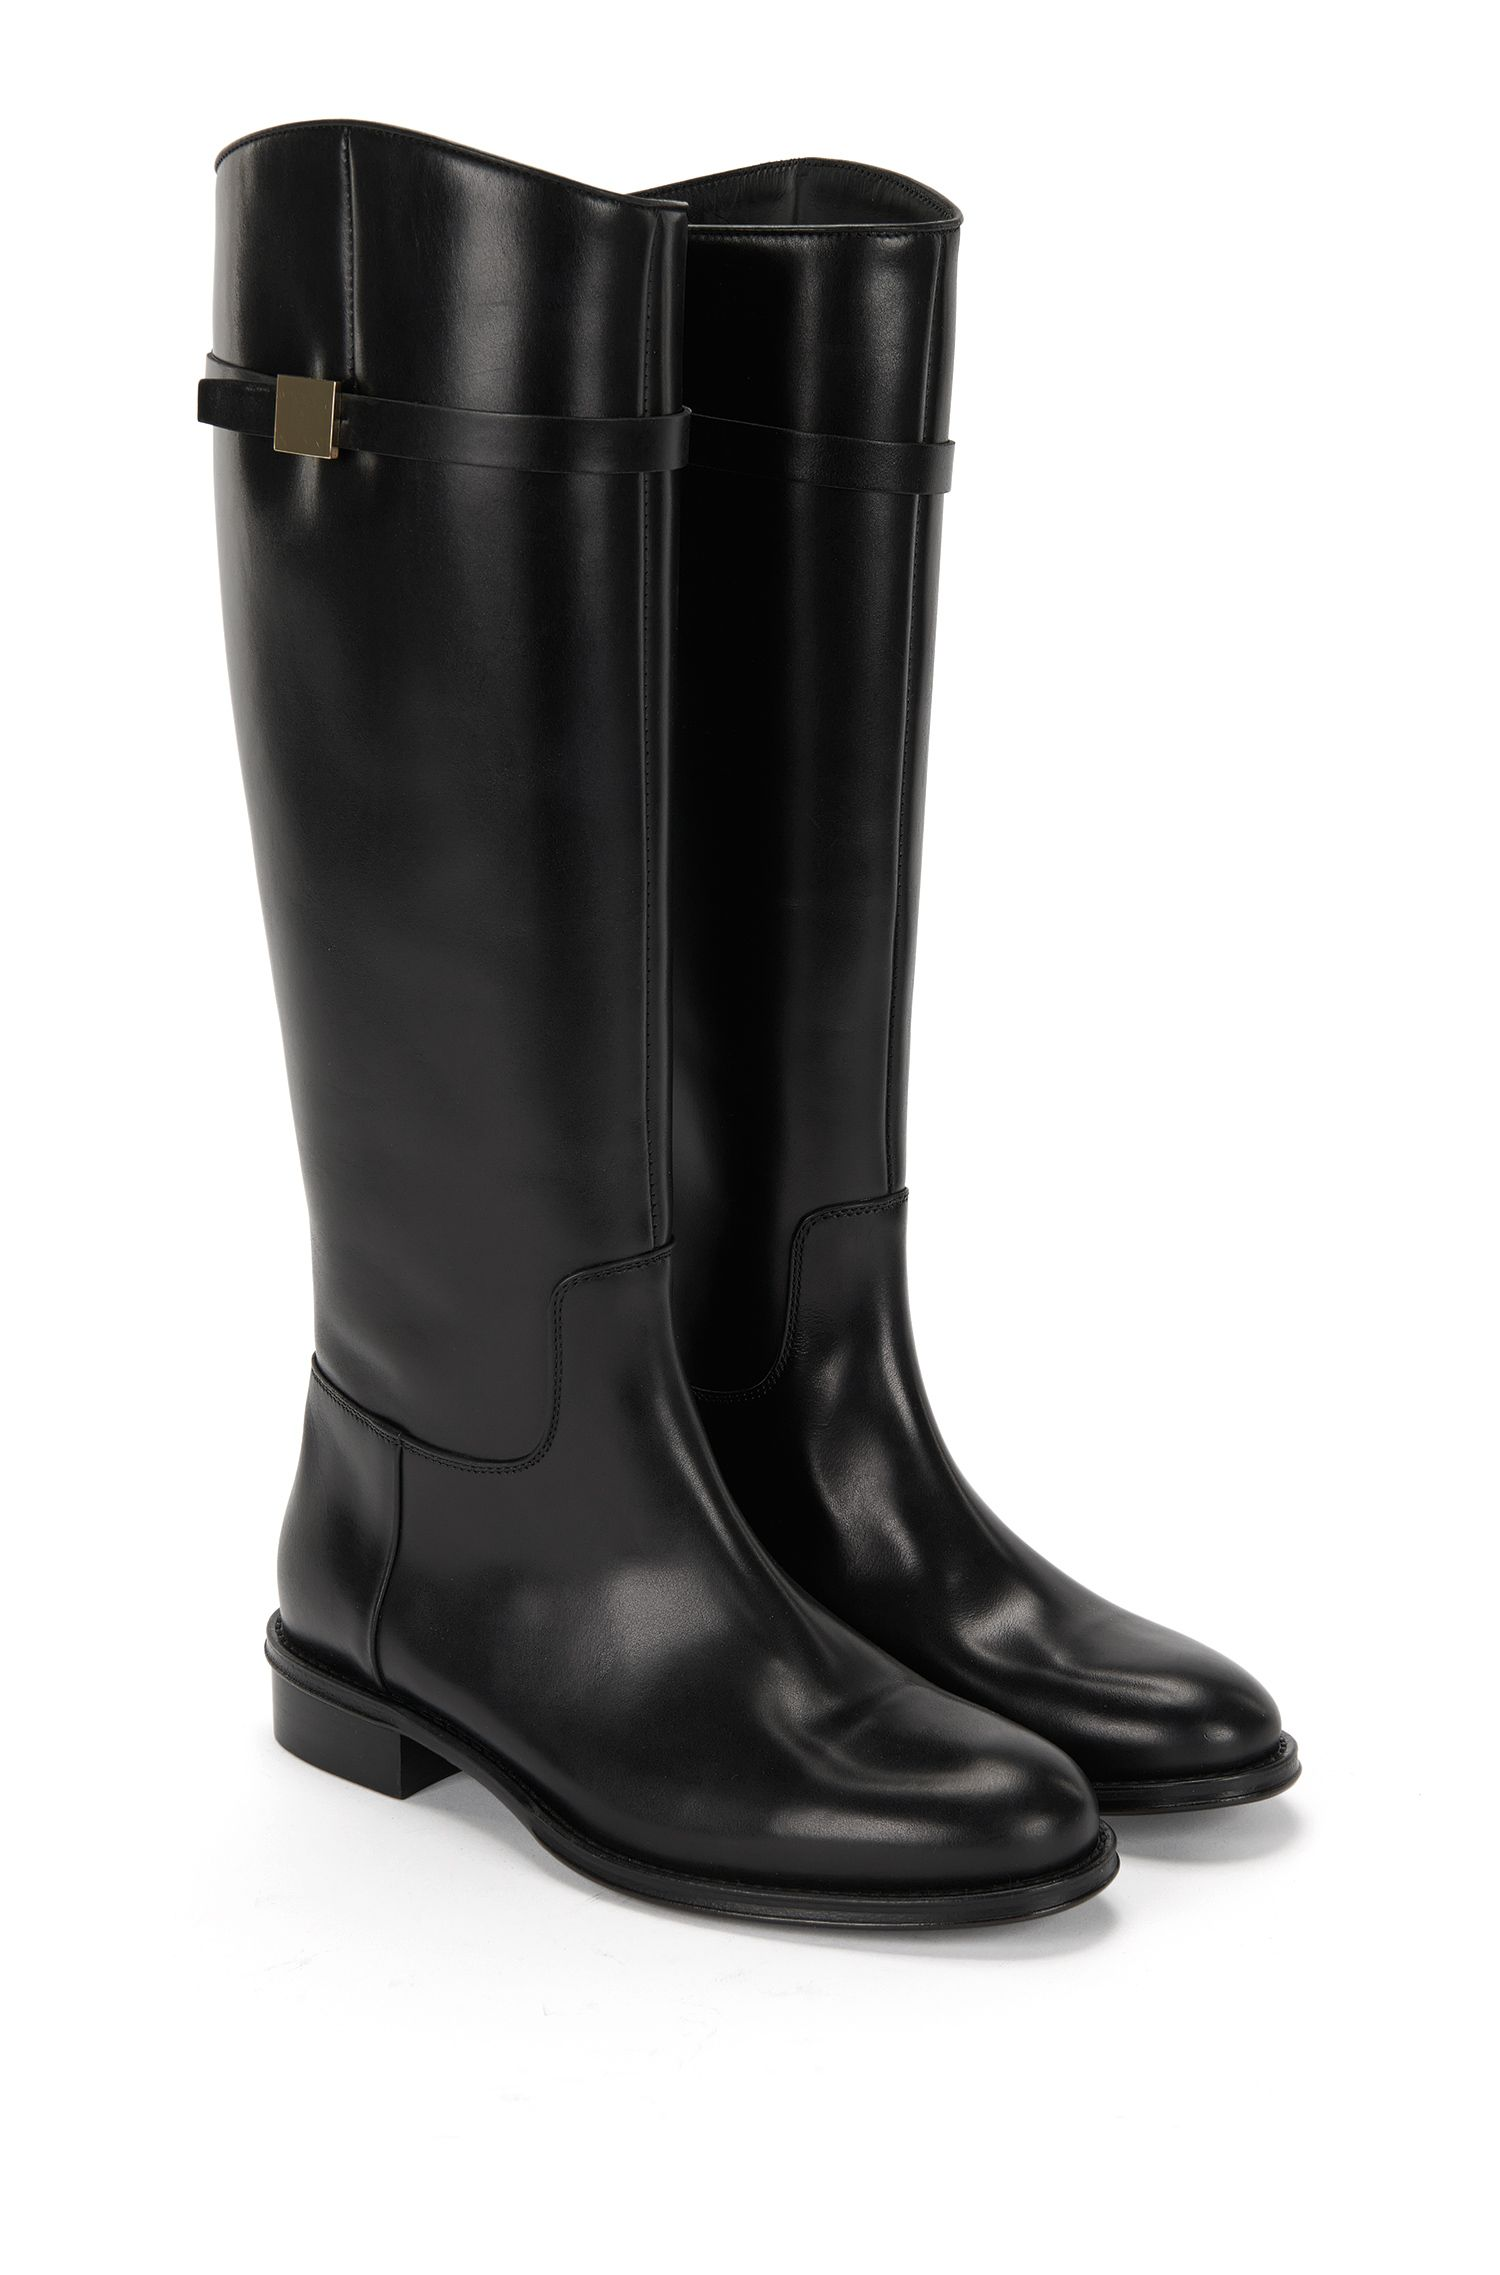 'Pin Riding Boot' | Italian Calfskin Riding Boot